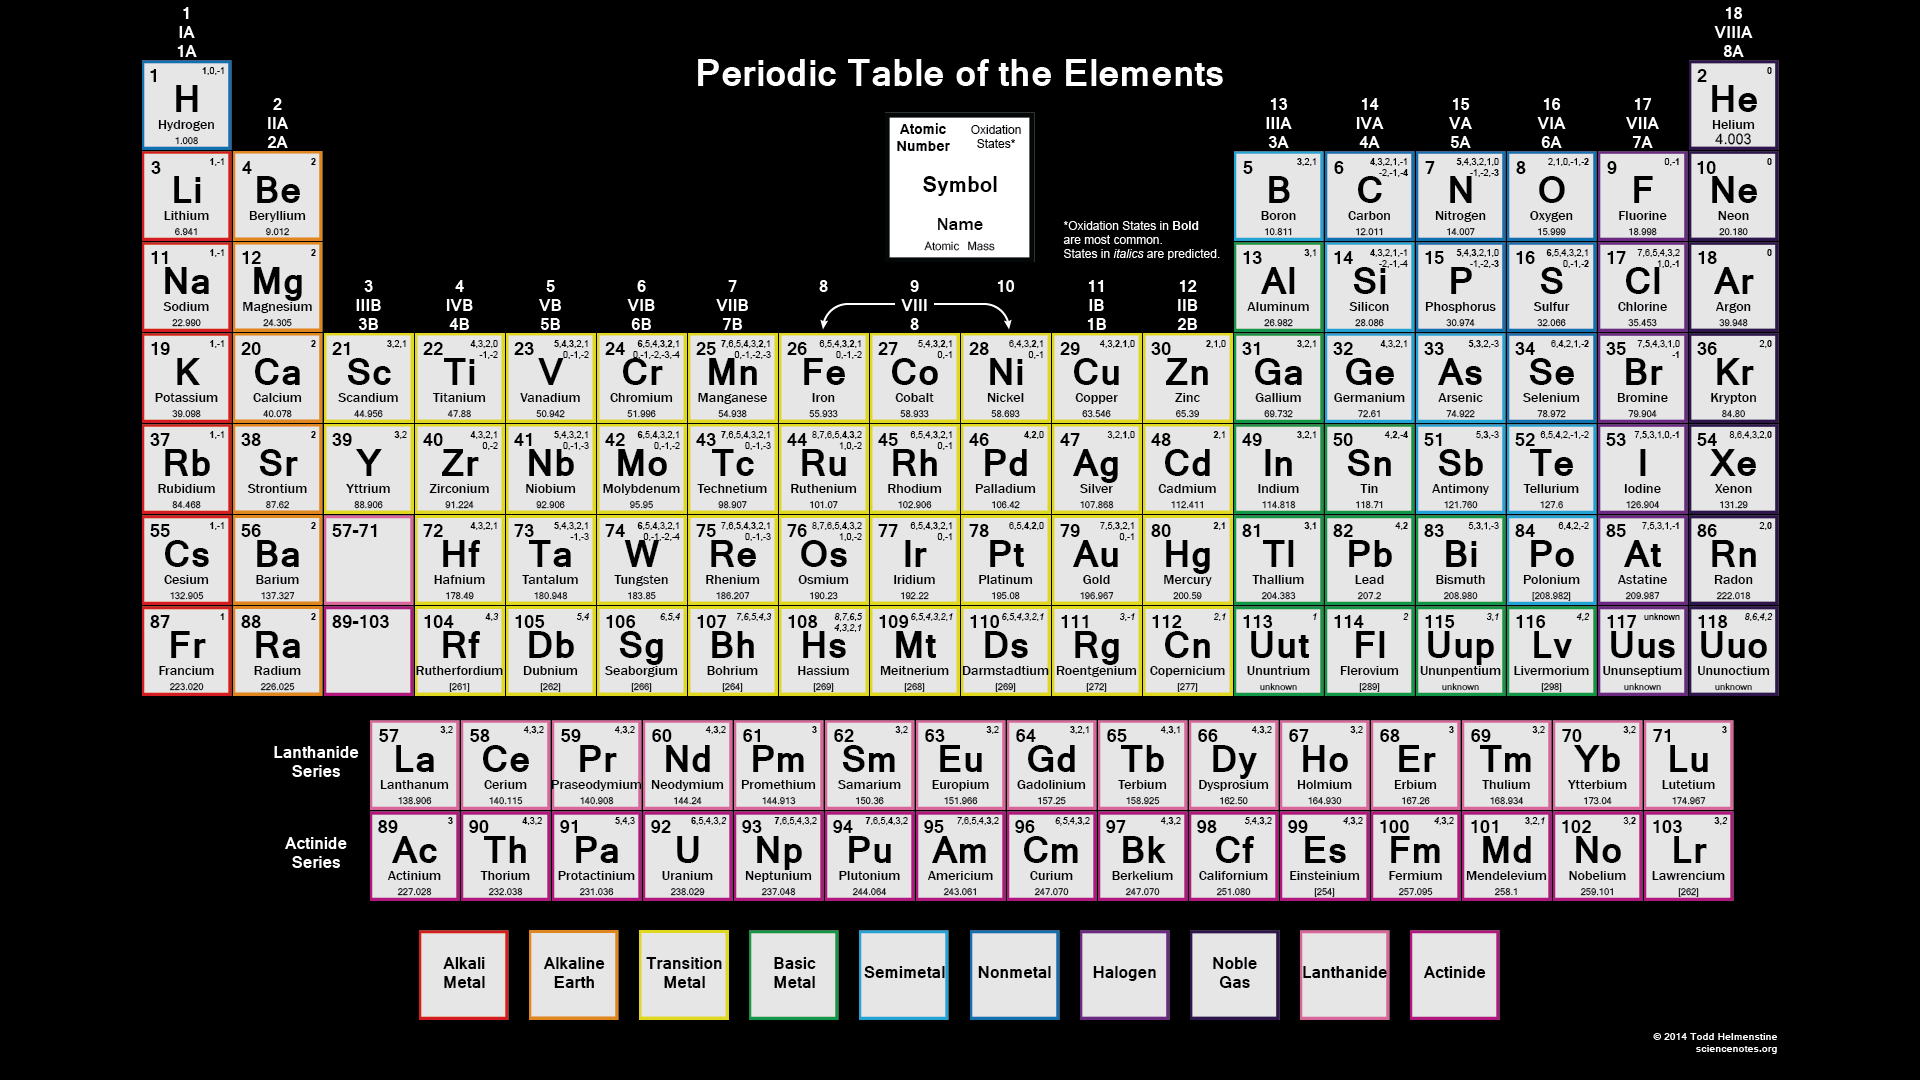 Downloadable periodic table oxidation states click for full screen urtaz Gallery